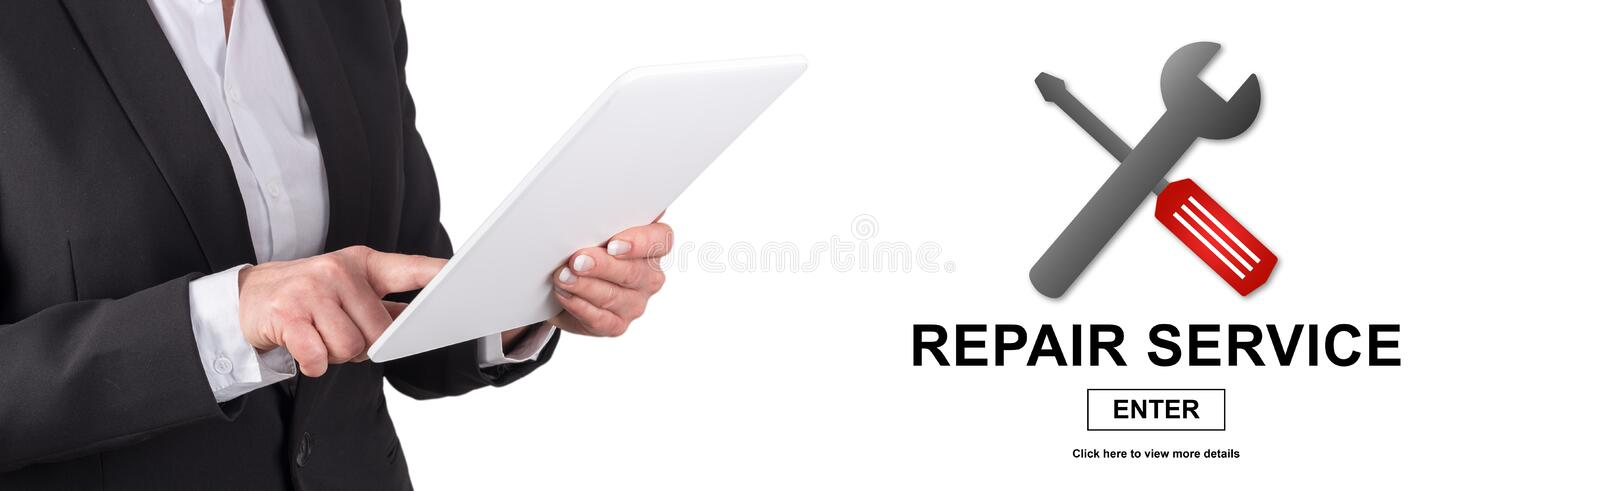 Concept of repair service. Woman using digital tablet with repair service concept on background stock photography